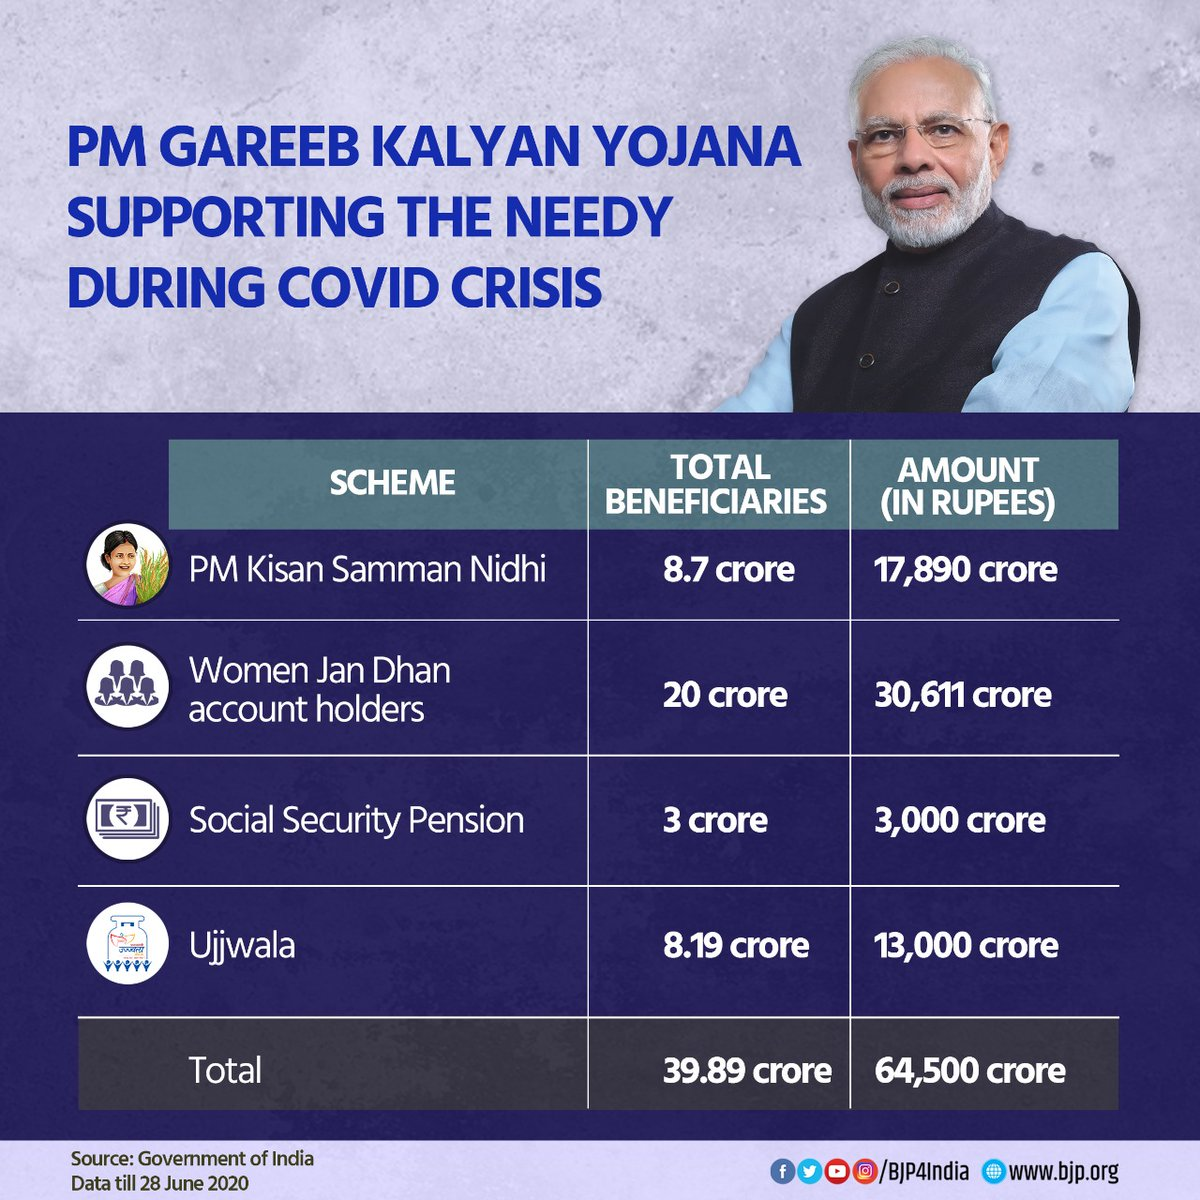 PM Gareeb Kalyan Yojana is supporting the needy during the COVID-19 crisis. Till now, 39.89 crore beneficiaries have received Rs 64,500 crore through PM Kisan Samman Nidhi, Jan Dhan accounts, Social Security Pensions and Ujjwala scheme.